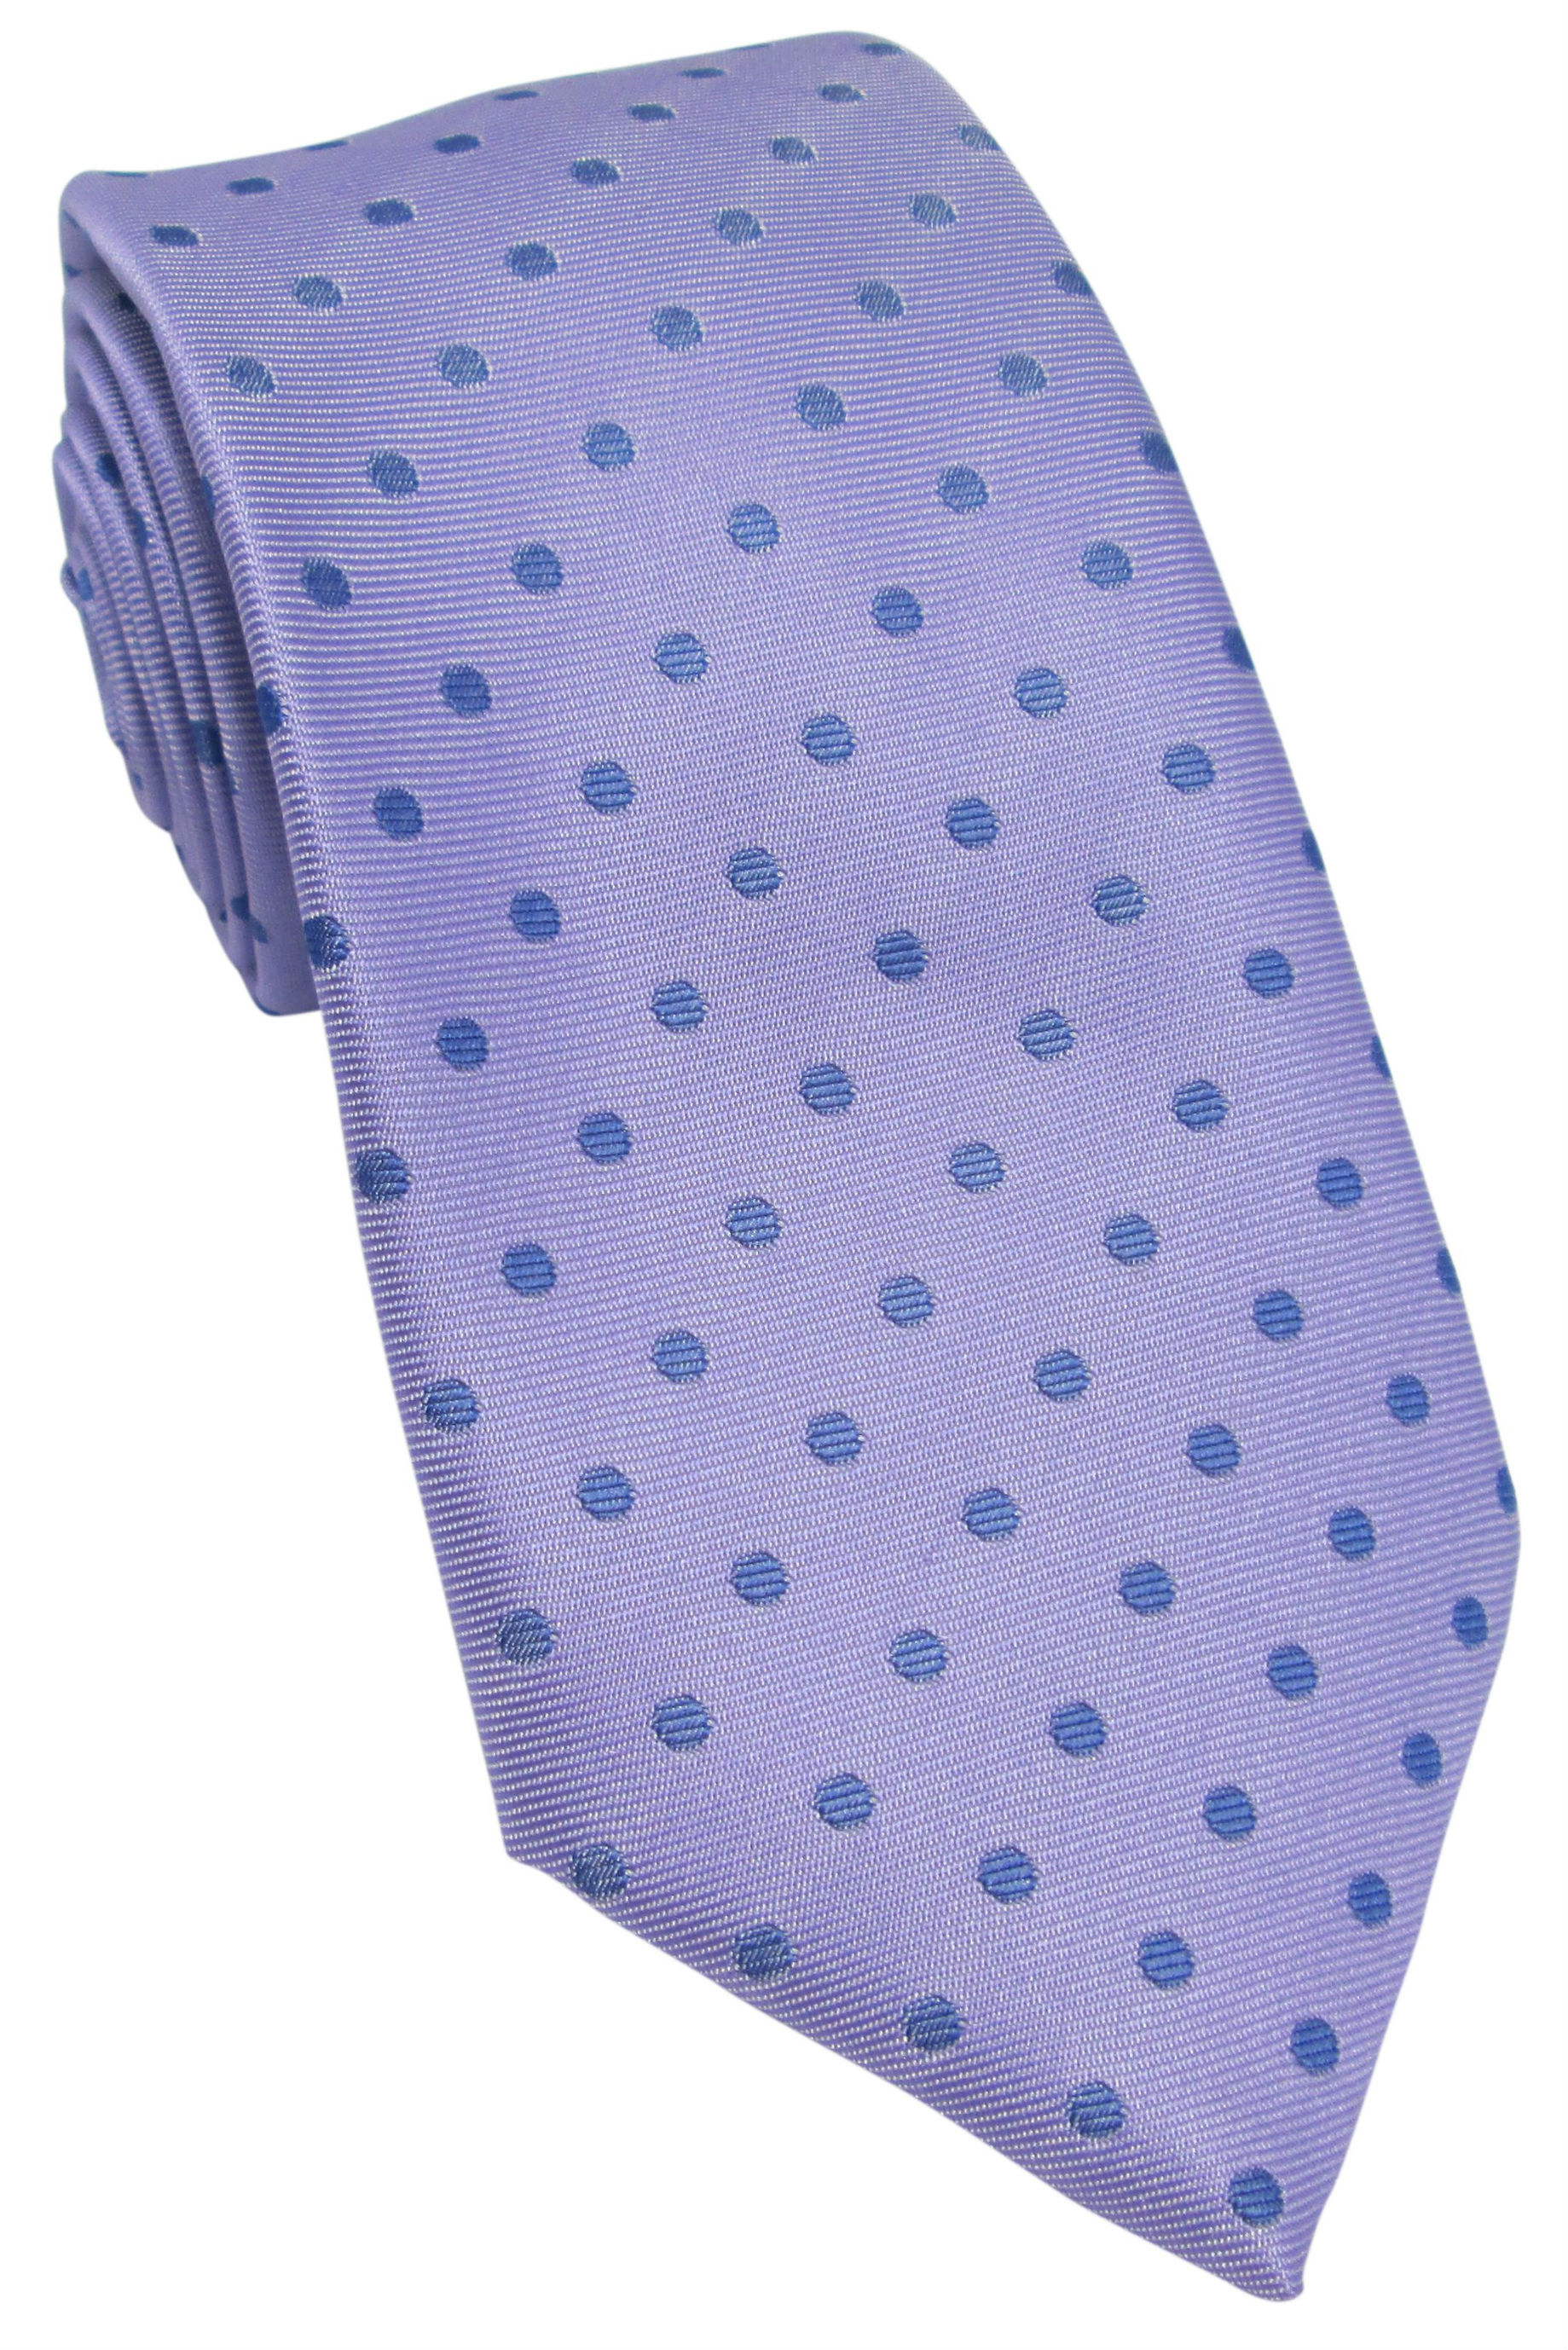 Lilac with Blue Polka Dot